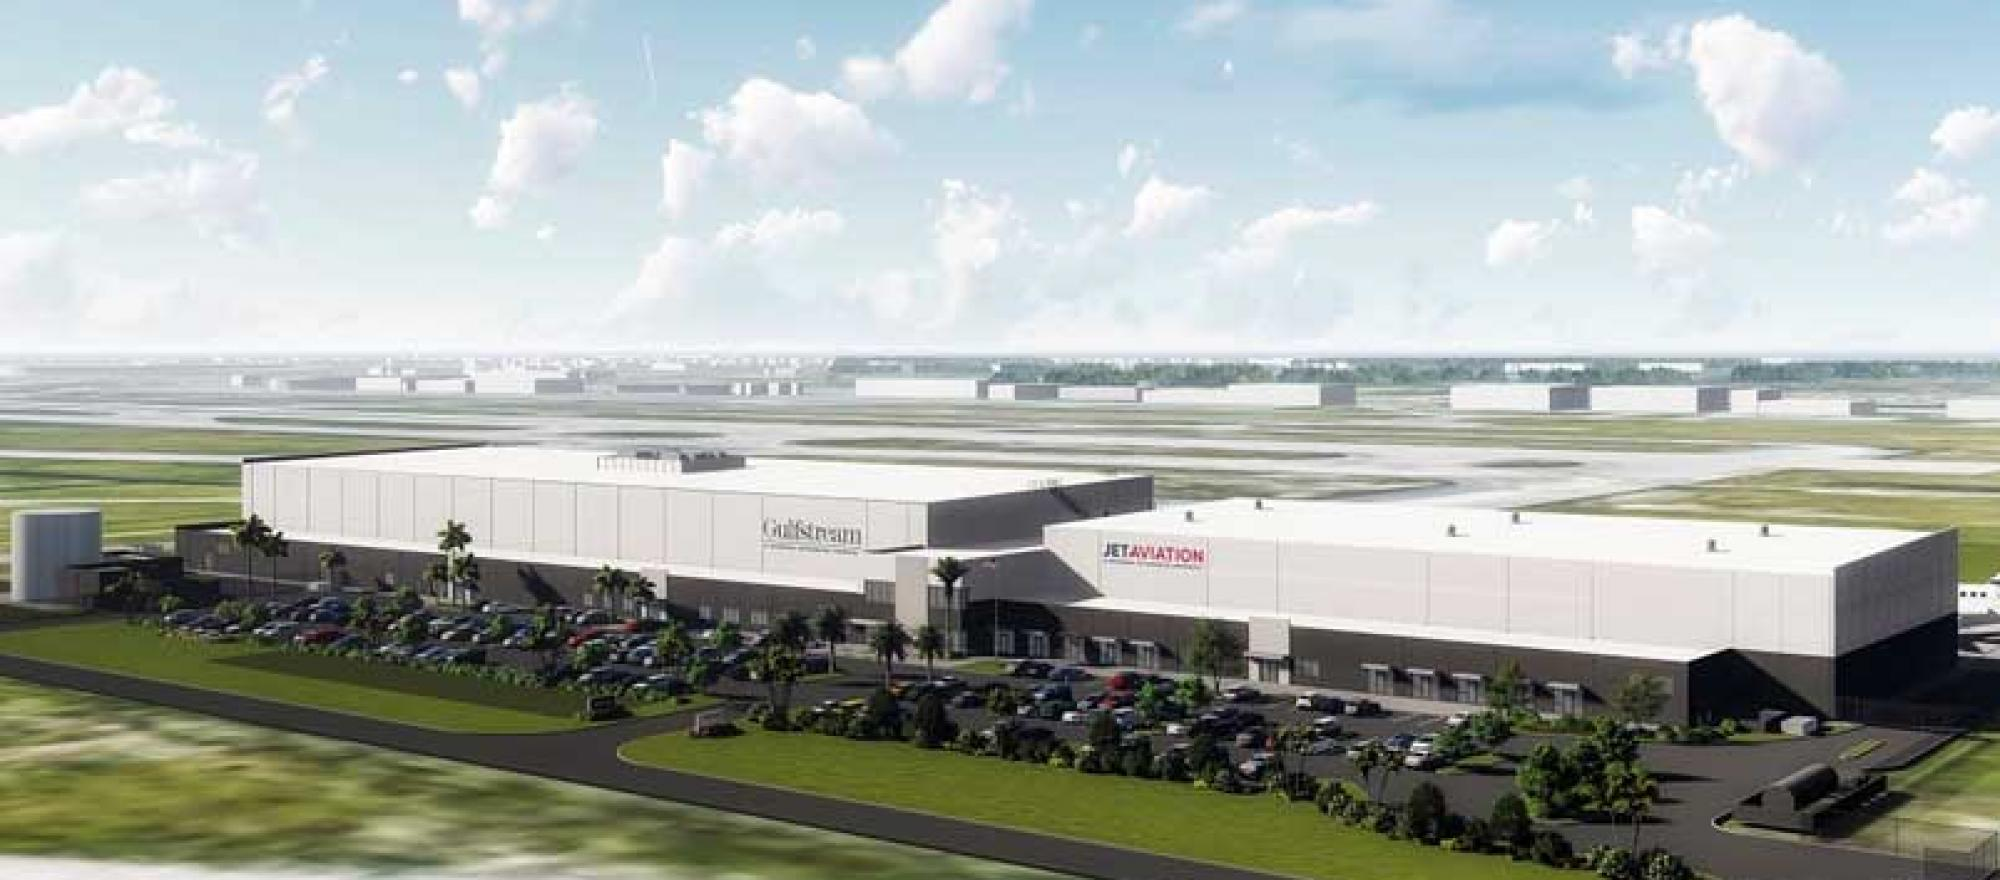 Artist rendering of planned Jet Aviation/Gulfstream Complex at PBI